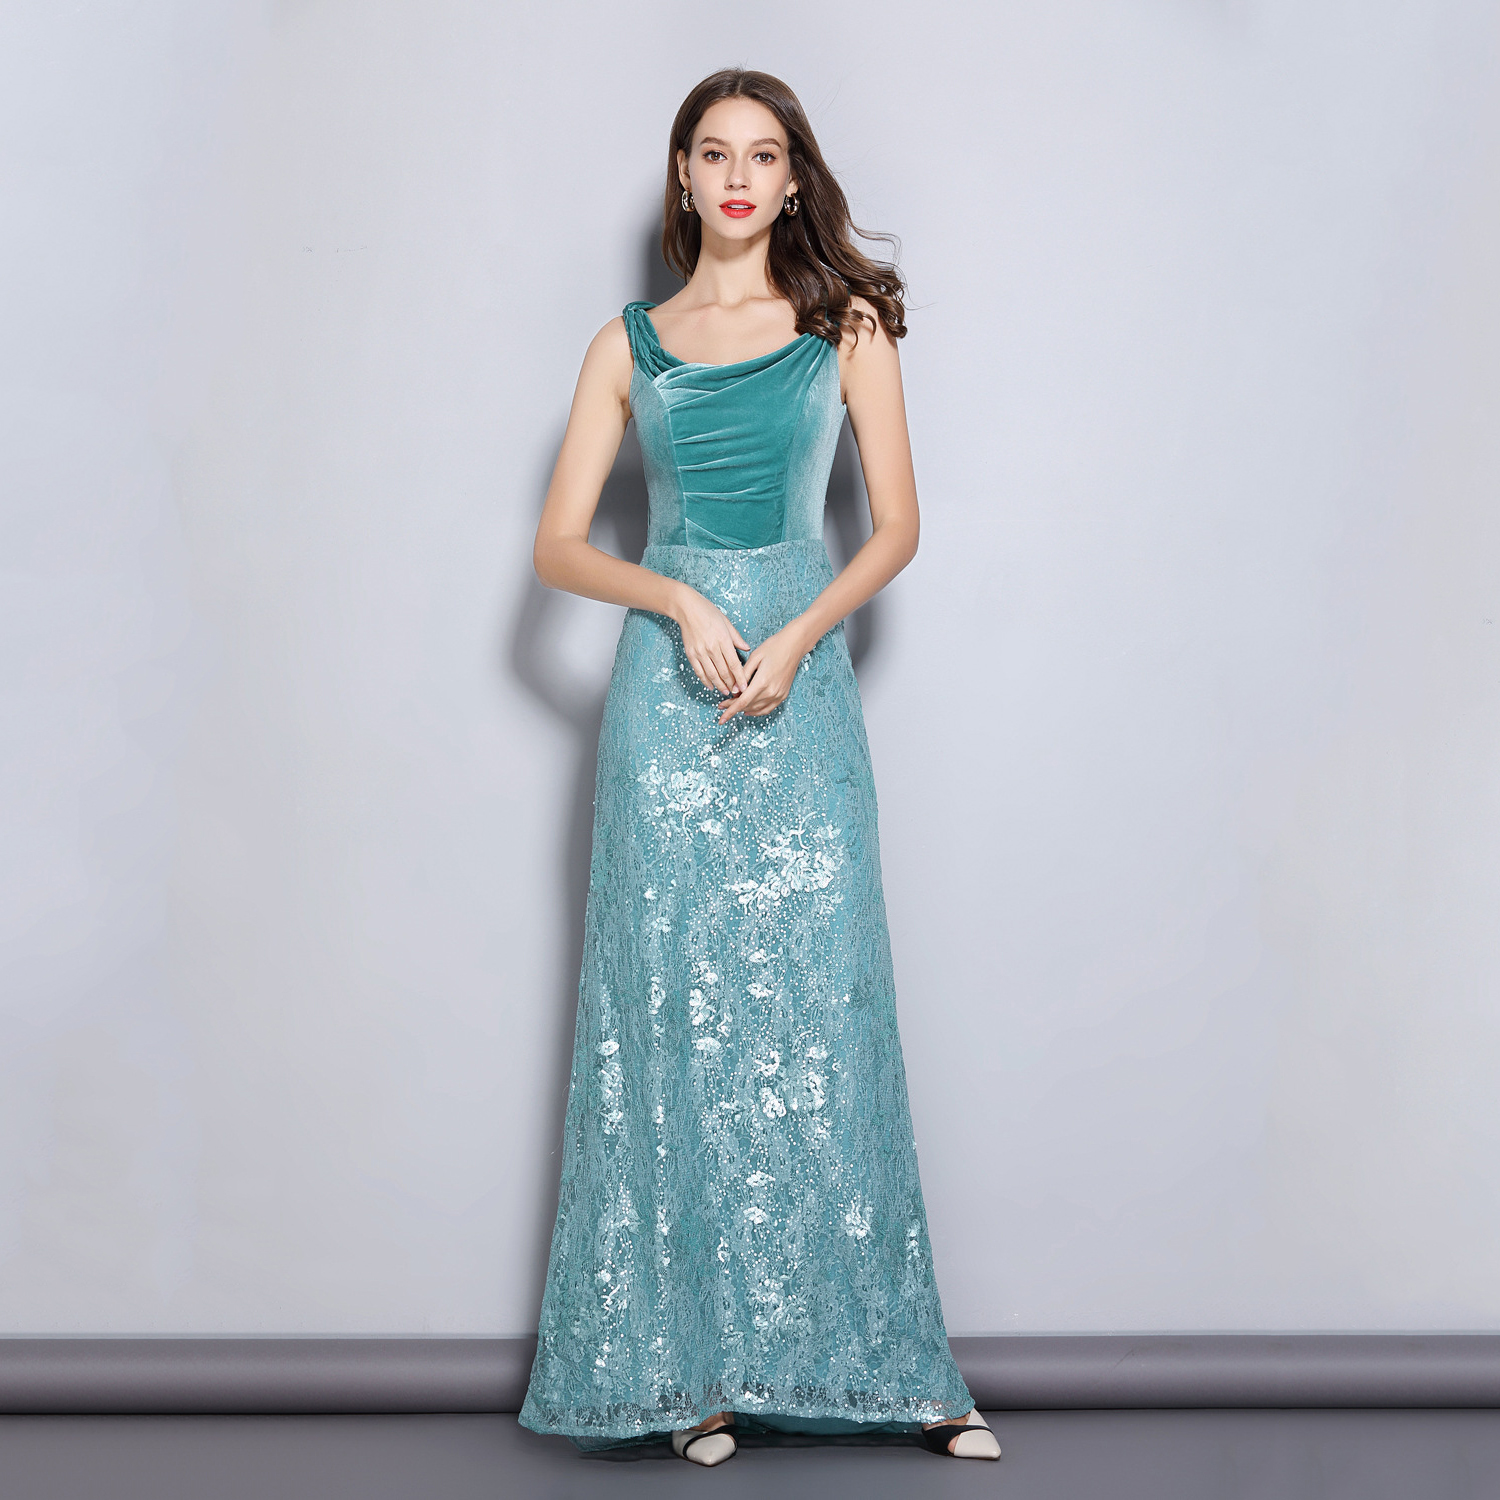 Sleeveless A Line   Evening     Dress   Sequins Lace Embroidery Prom Party Gowns Vestidos De Festa Elegant Formal   Dresses   For Women